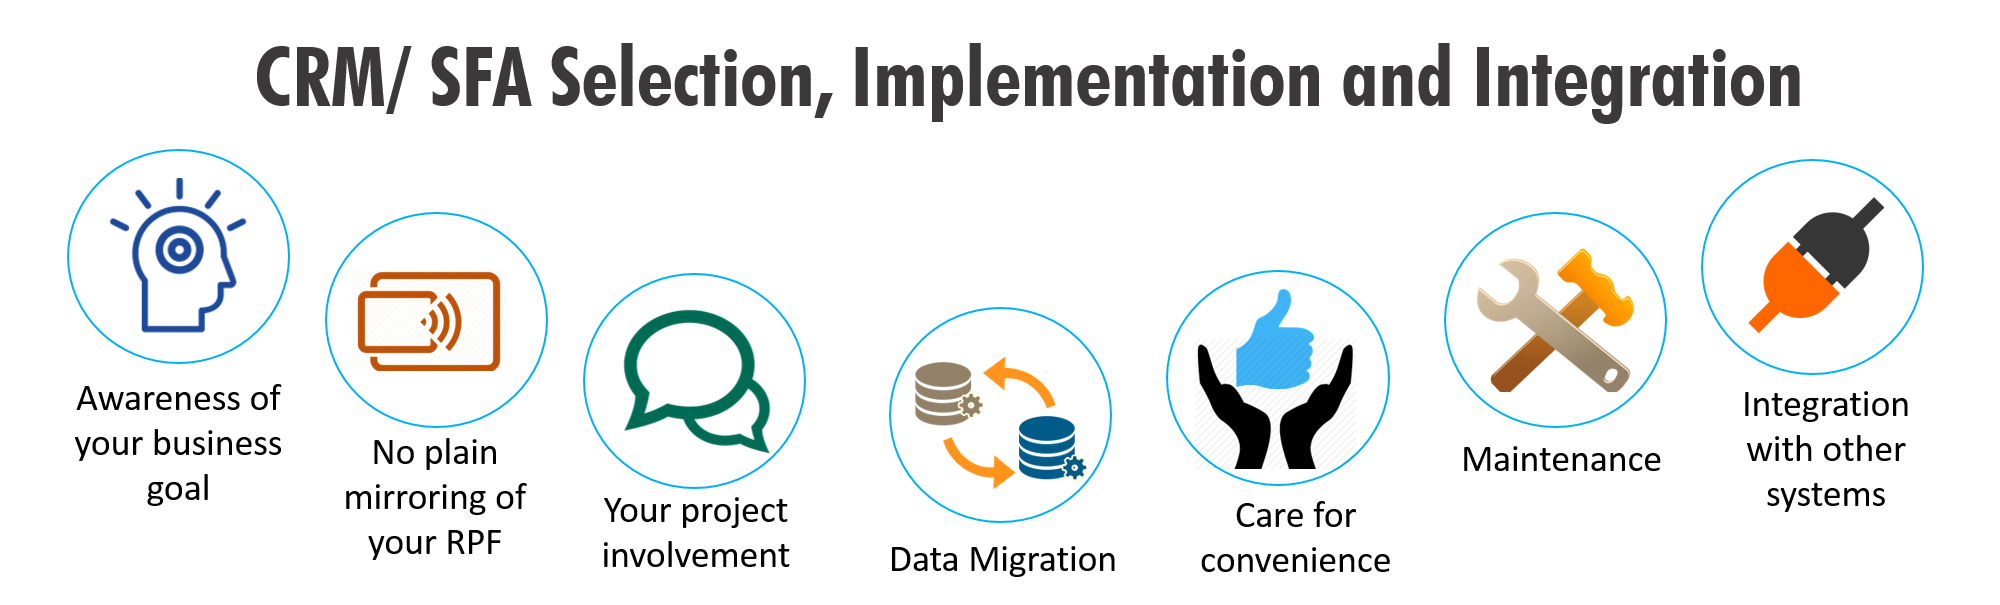 CRM/ SFA Selection, Implementation and Integration